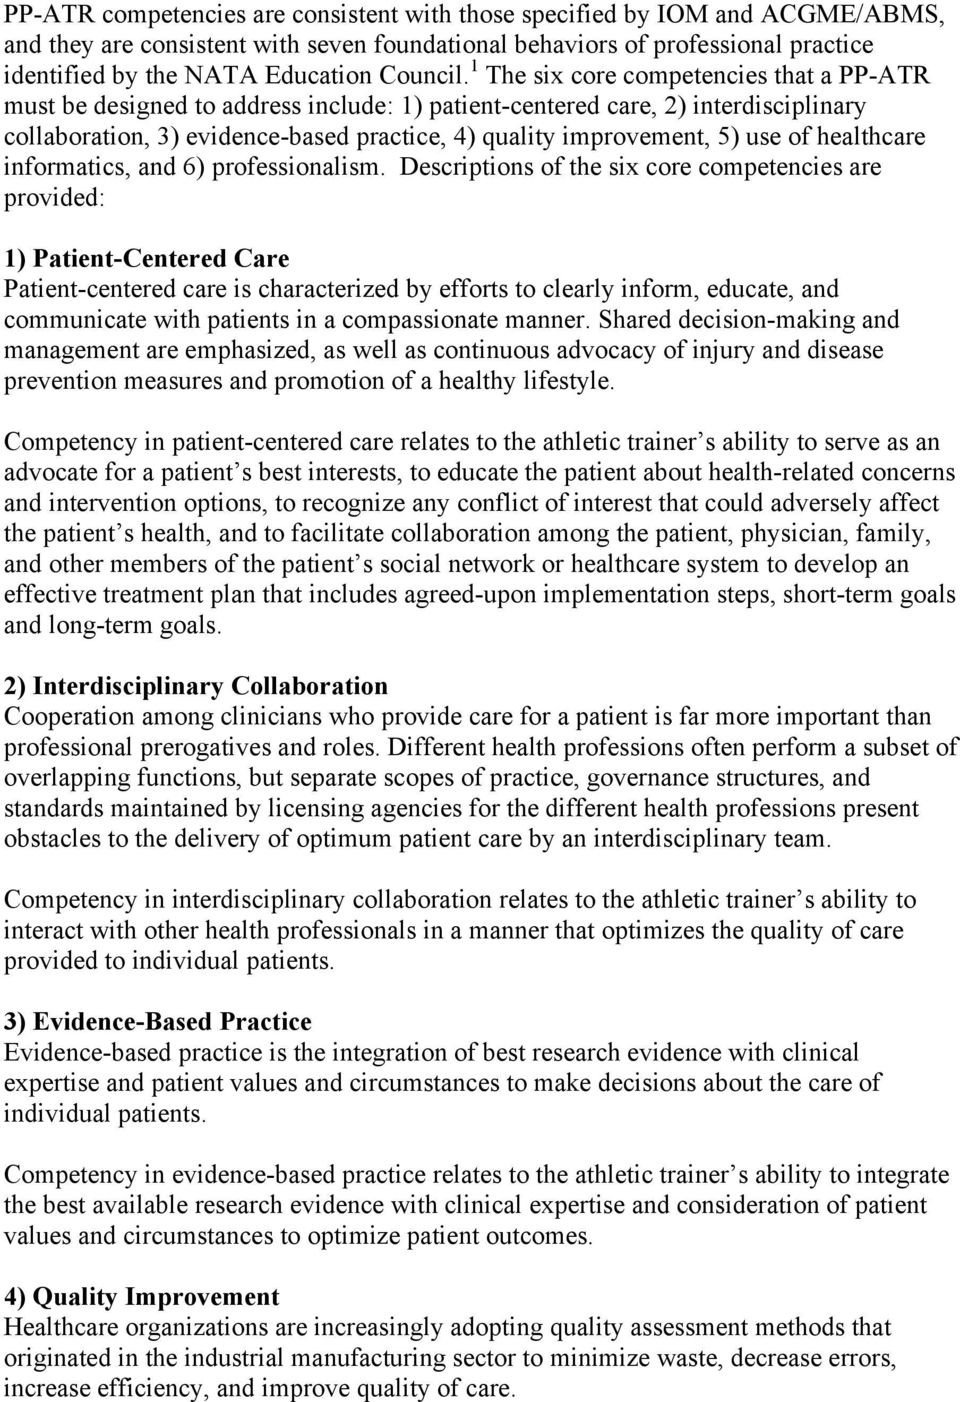 1 The six core competencies that a PP-ATR must be designed to address include: 1) patient-centered care, 2) interdisciplinary collaboration, 3) evidence-based practice, 4) quality improvement, 5) use